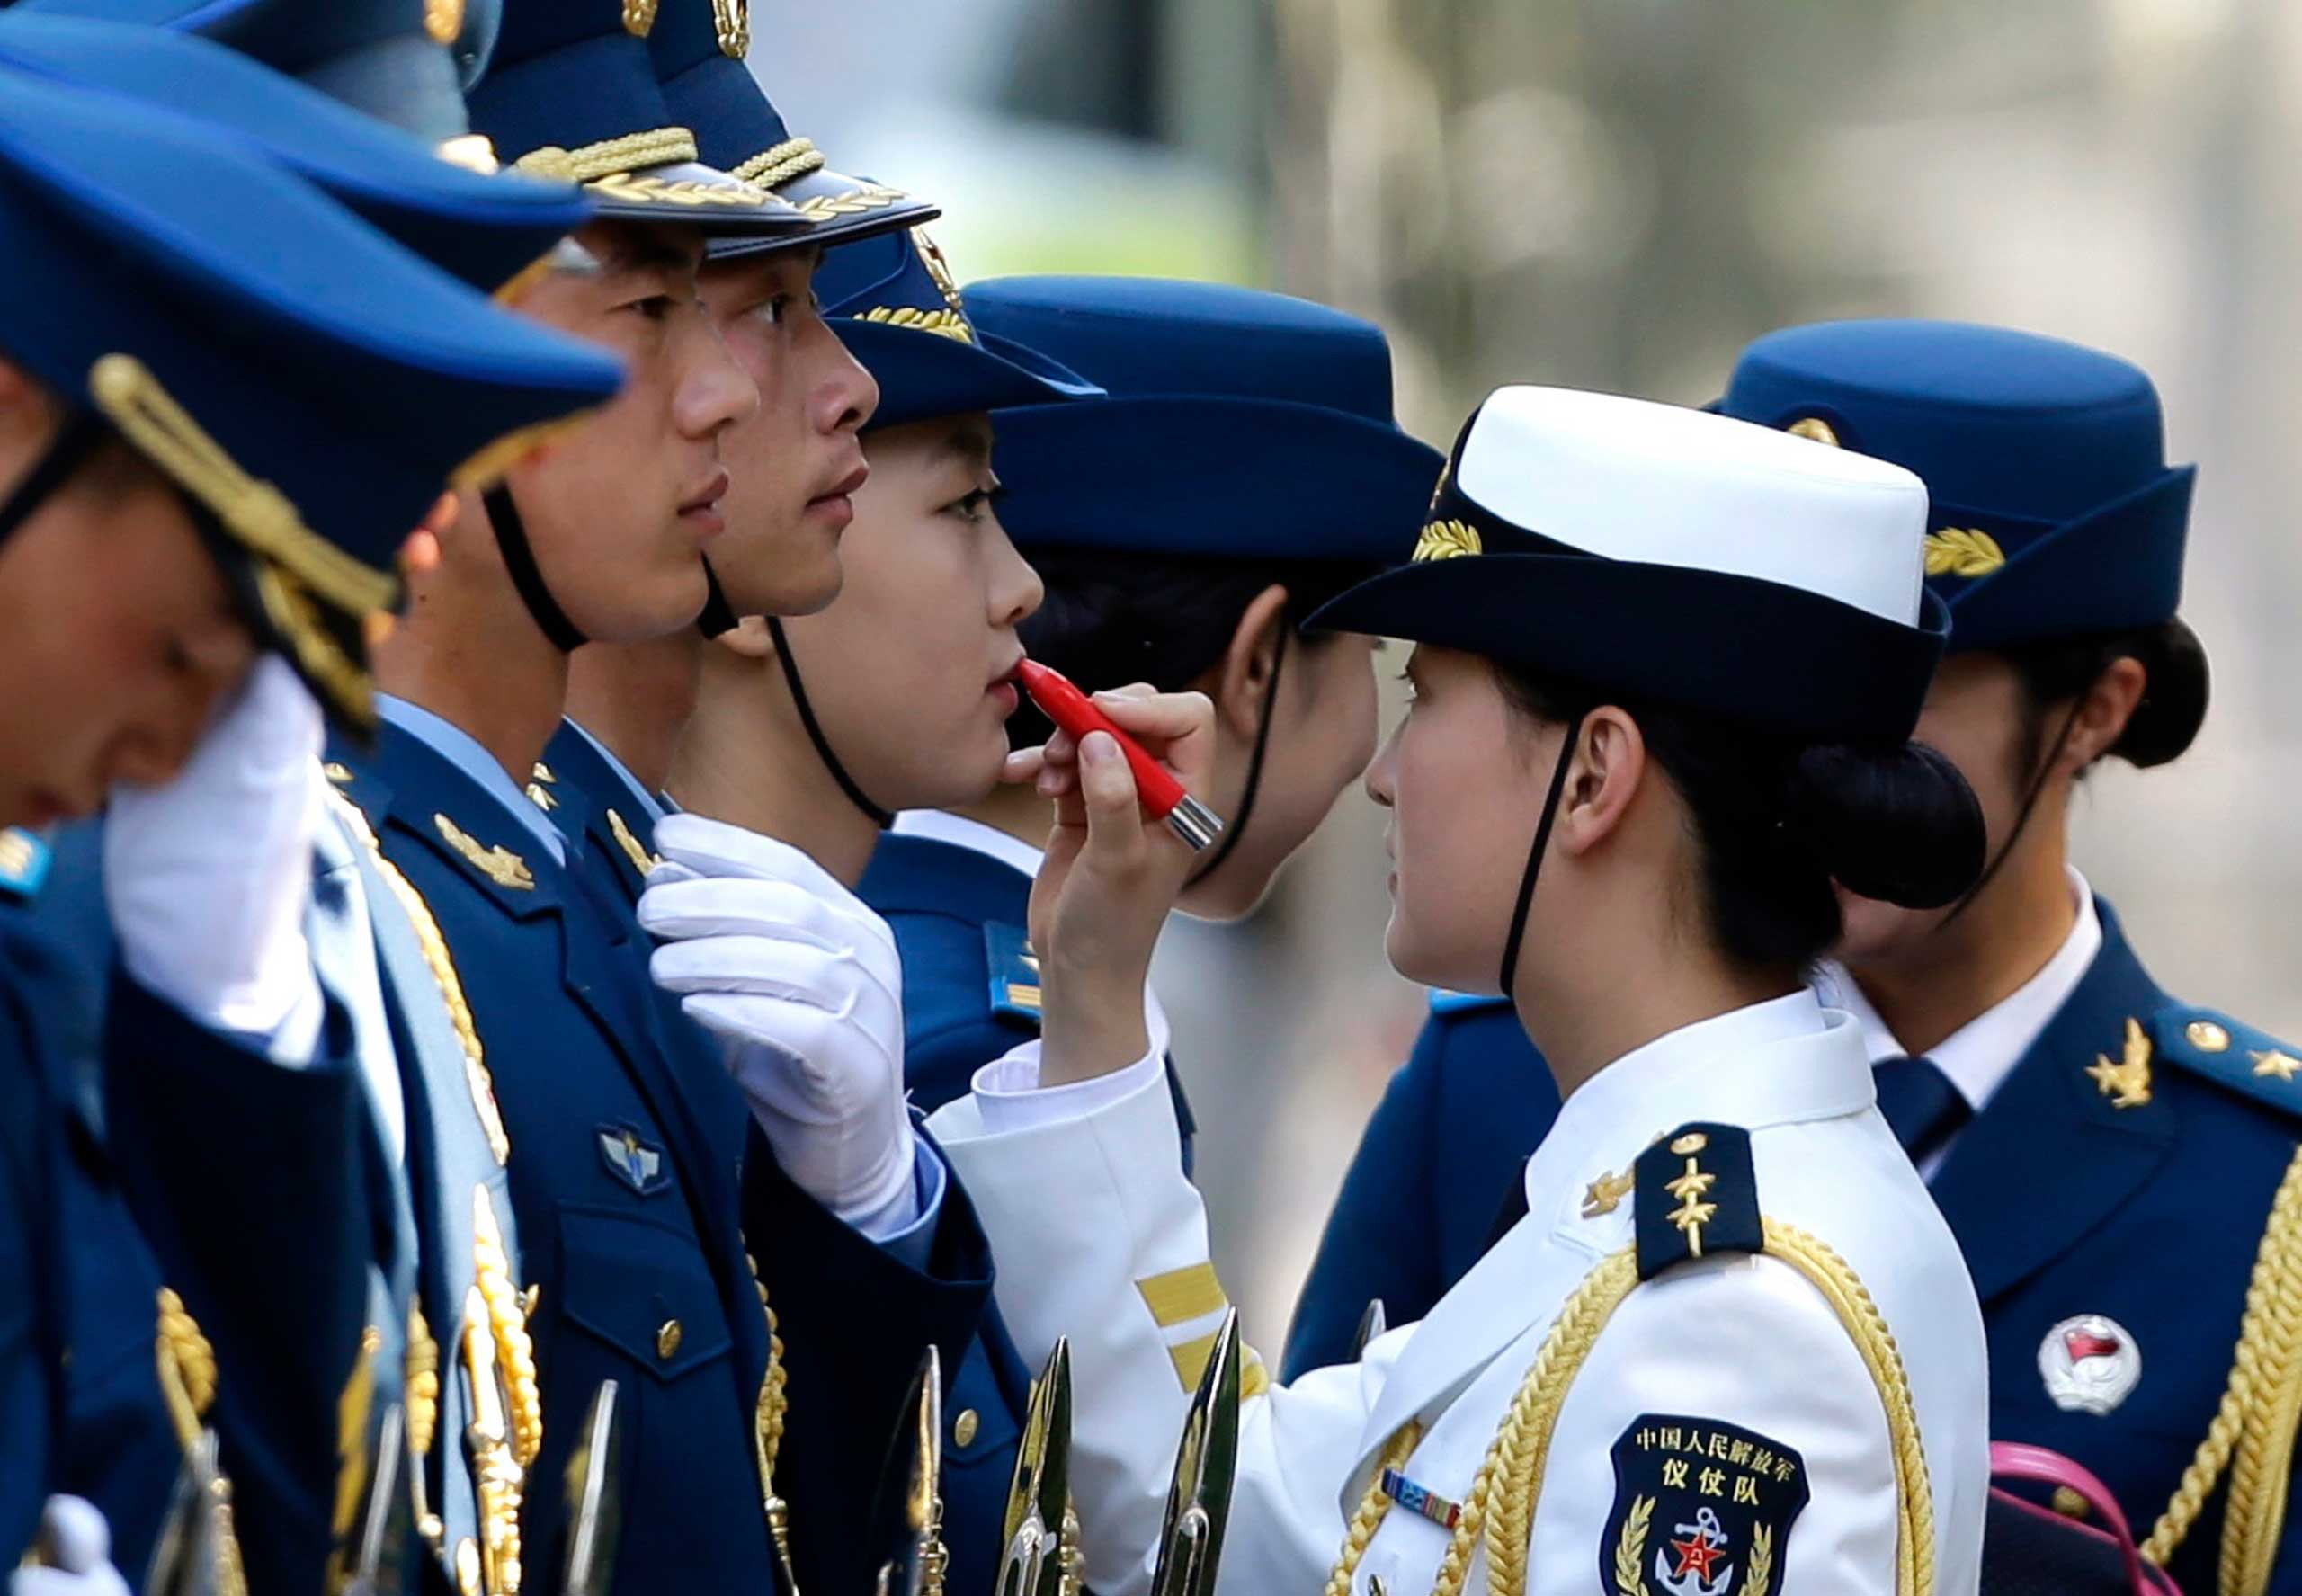 A female honor guard has lipstick applied as they prepare for an official welcoming ceremony for Italy's Prime Minister Matteo Renzi outside the Great Hall of the People in Beijing, June 11, 2014.